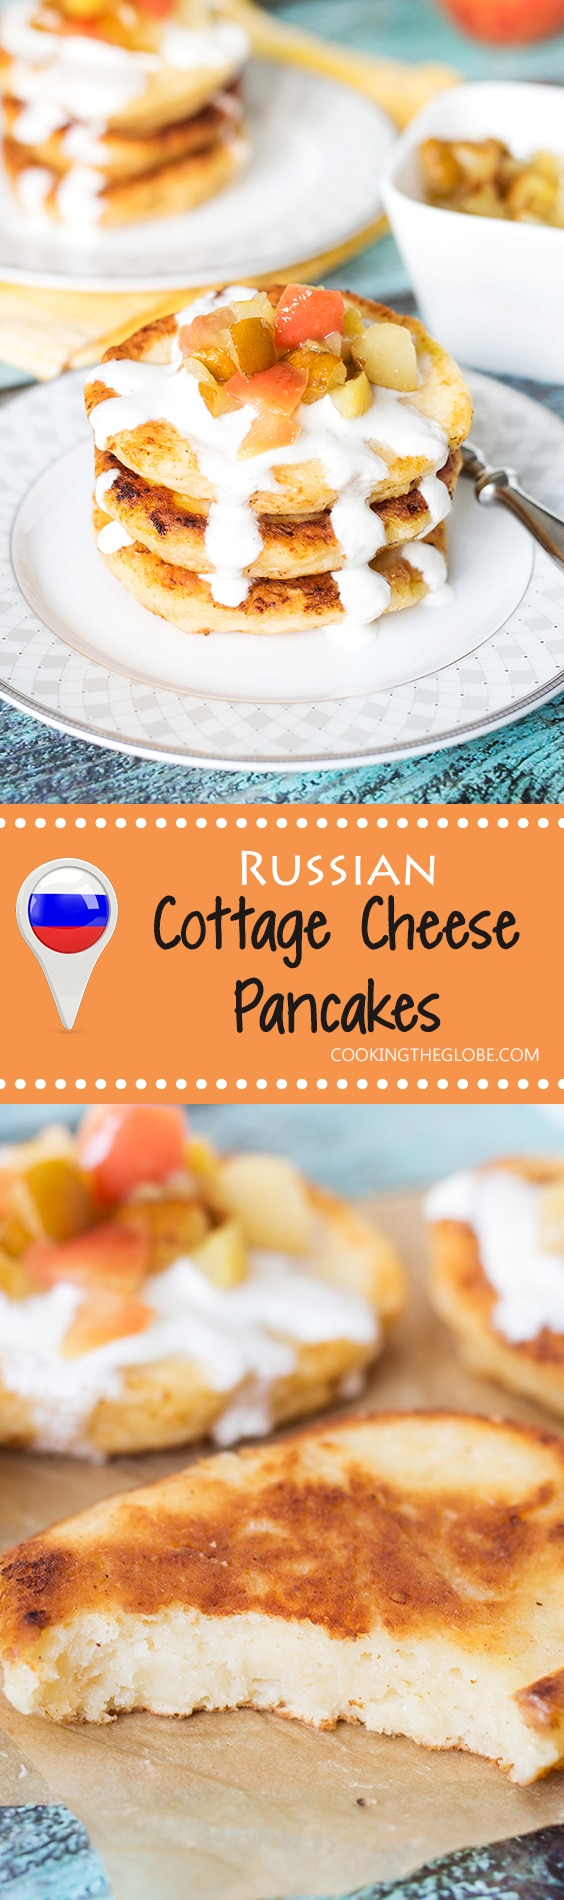 These Cottage Cheese Pancakes come from Russia and are called Syrniki. Served with sour cream and caramelized fruit! | cookingtheglobe.com